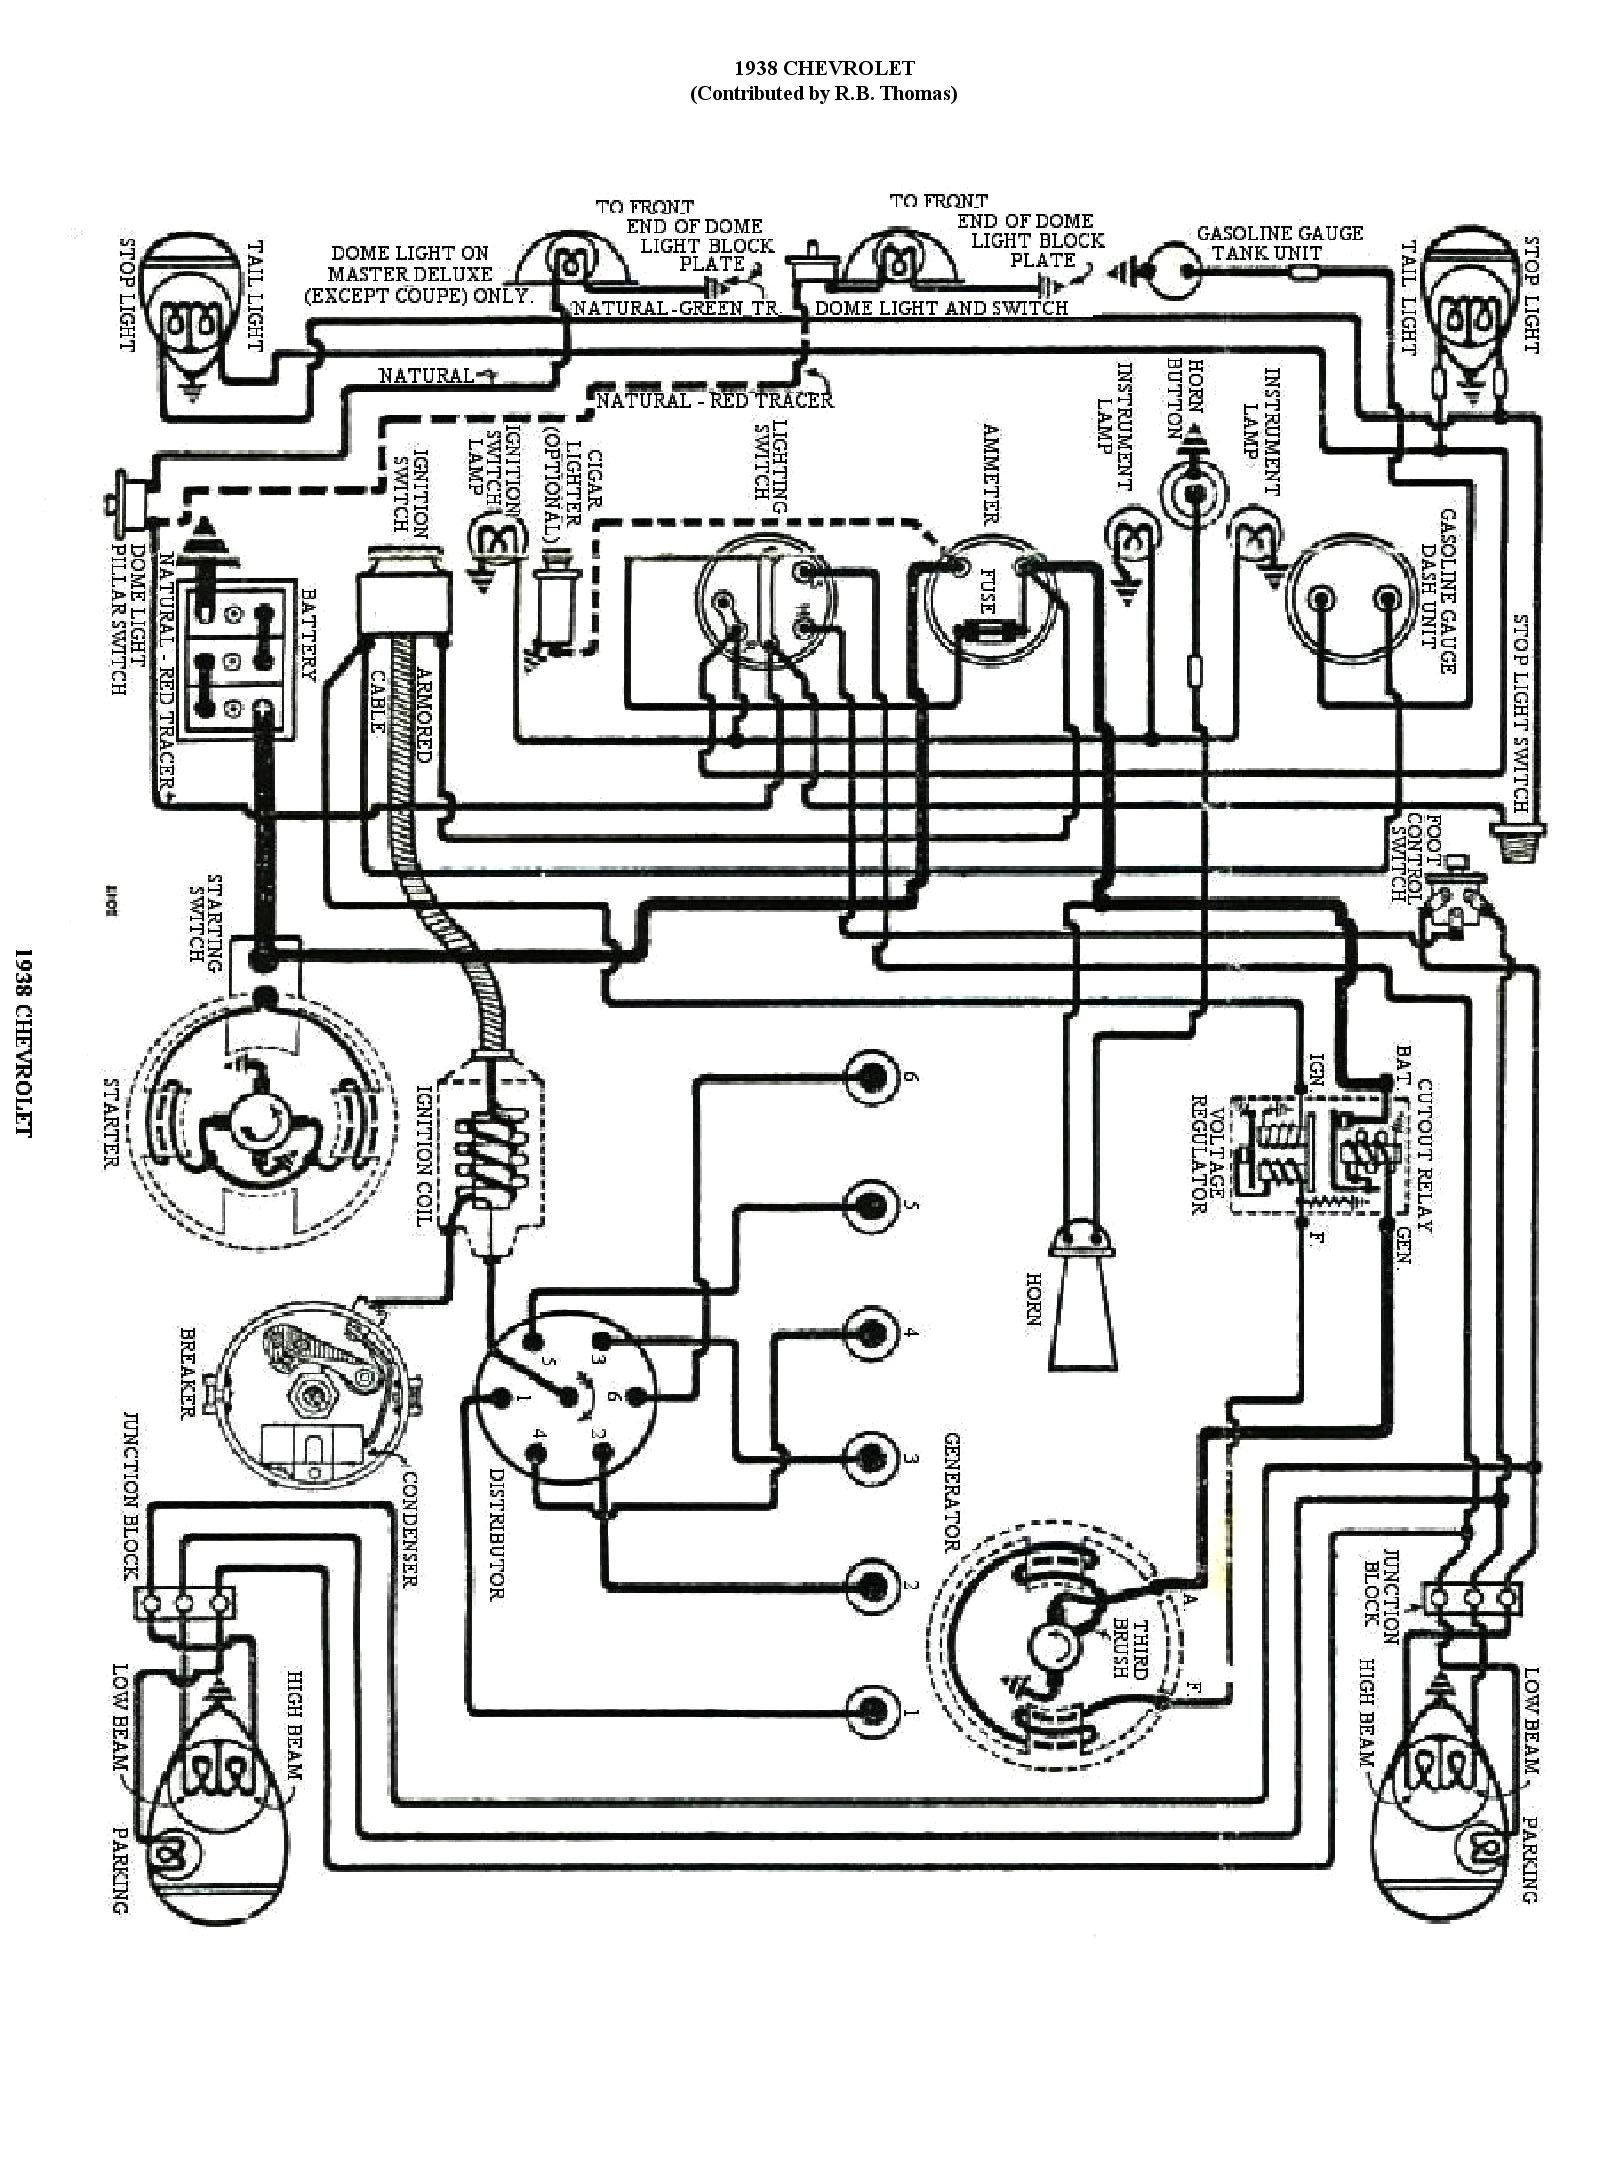 Wiring Diagram For A 1937 Chevy Truck Libraries Kia Sorento D4cb Engine Diagrams Chevrolet Third Level1937 Todays 1969